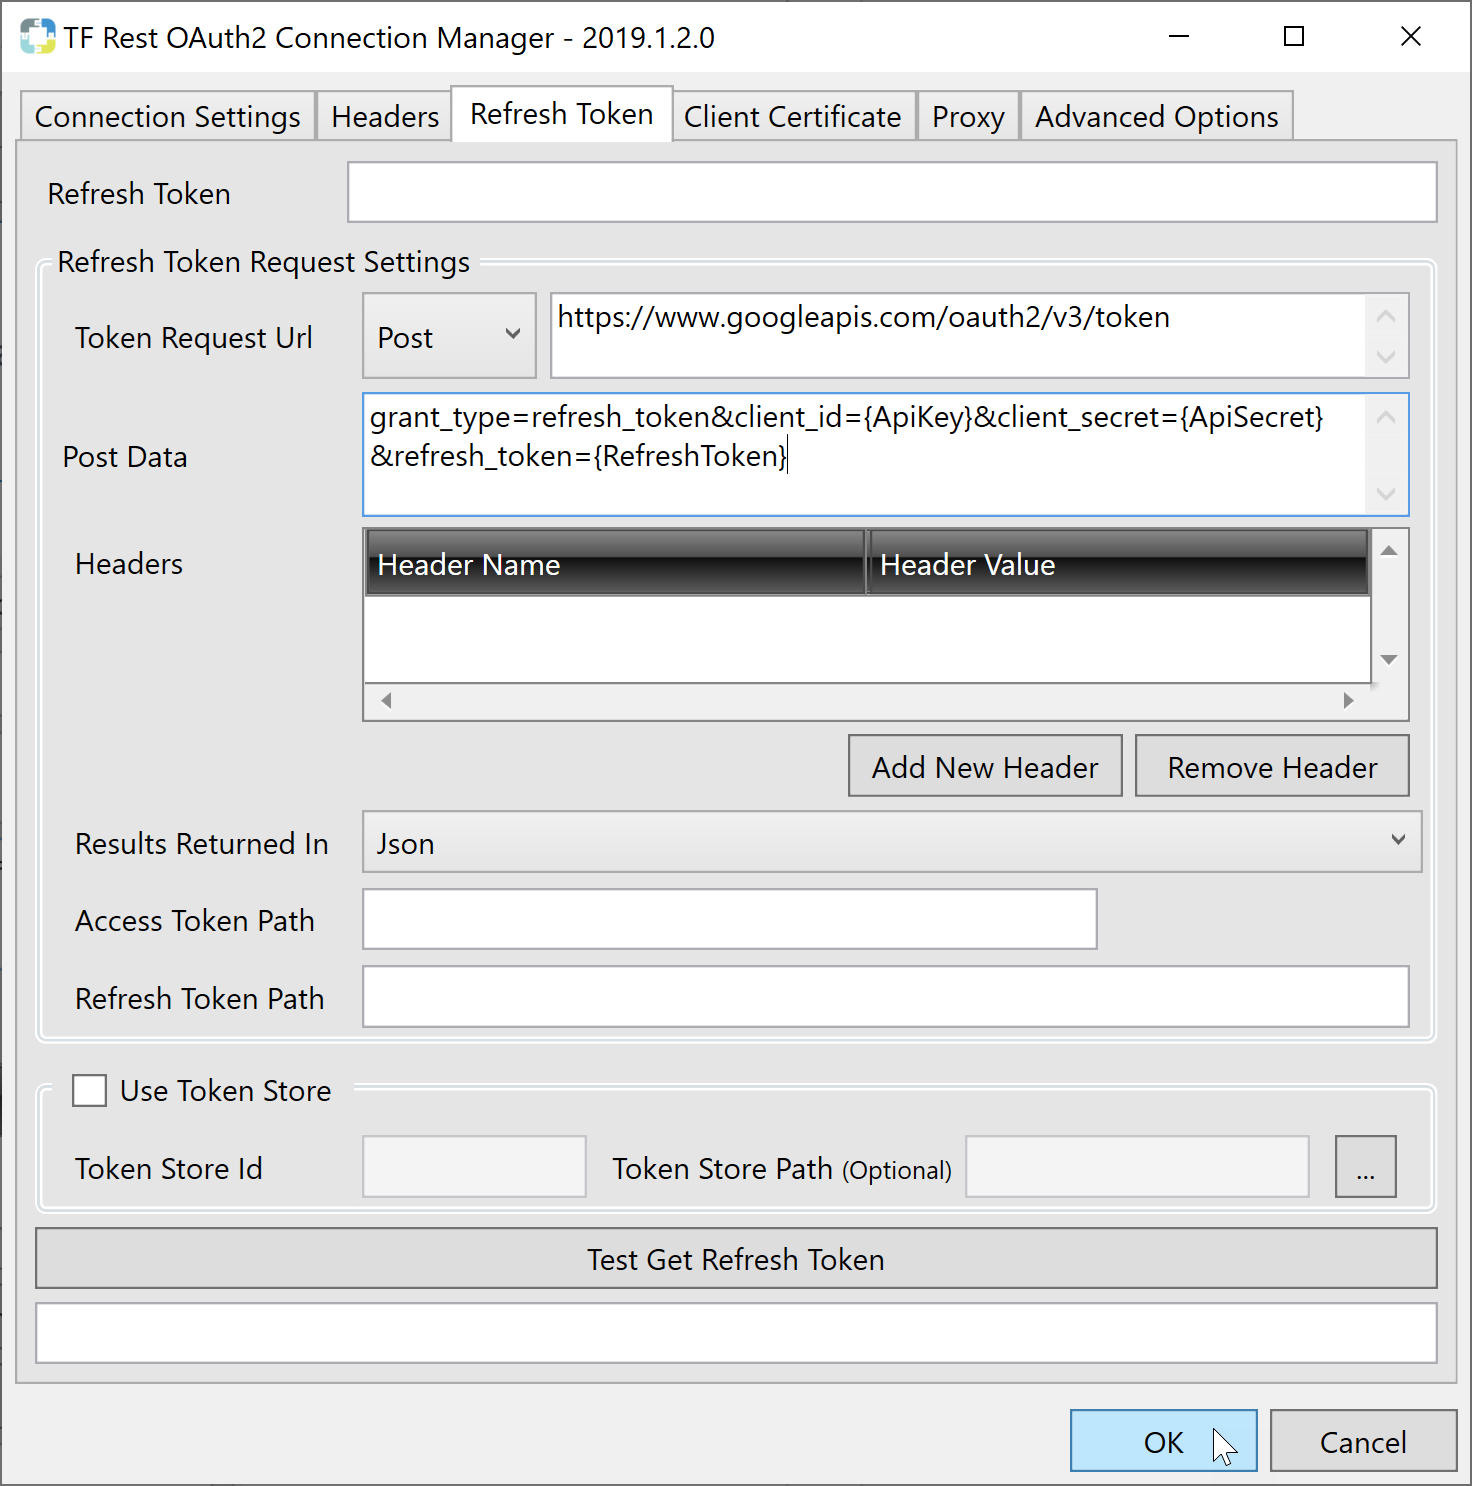 Task Factory Rest OAuth2 Connection Manager populated